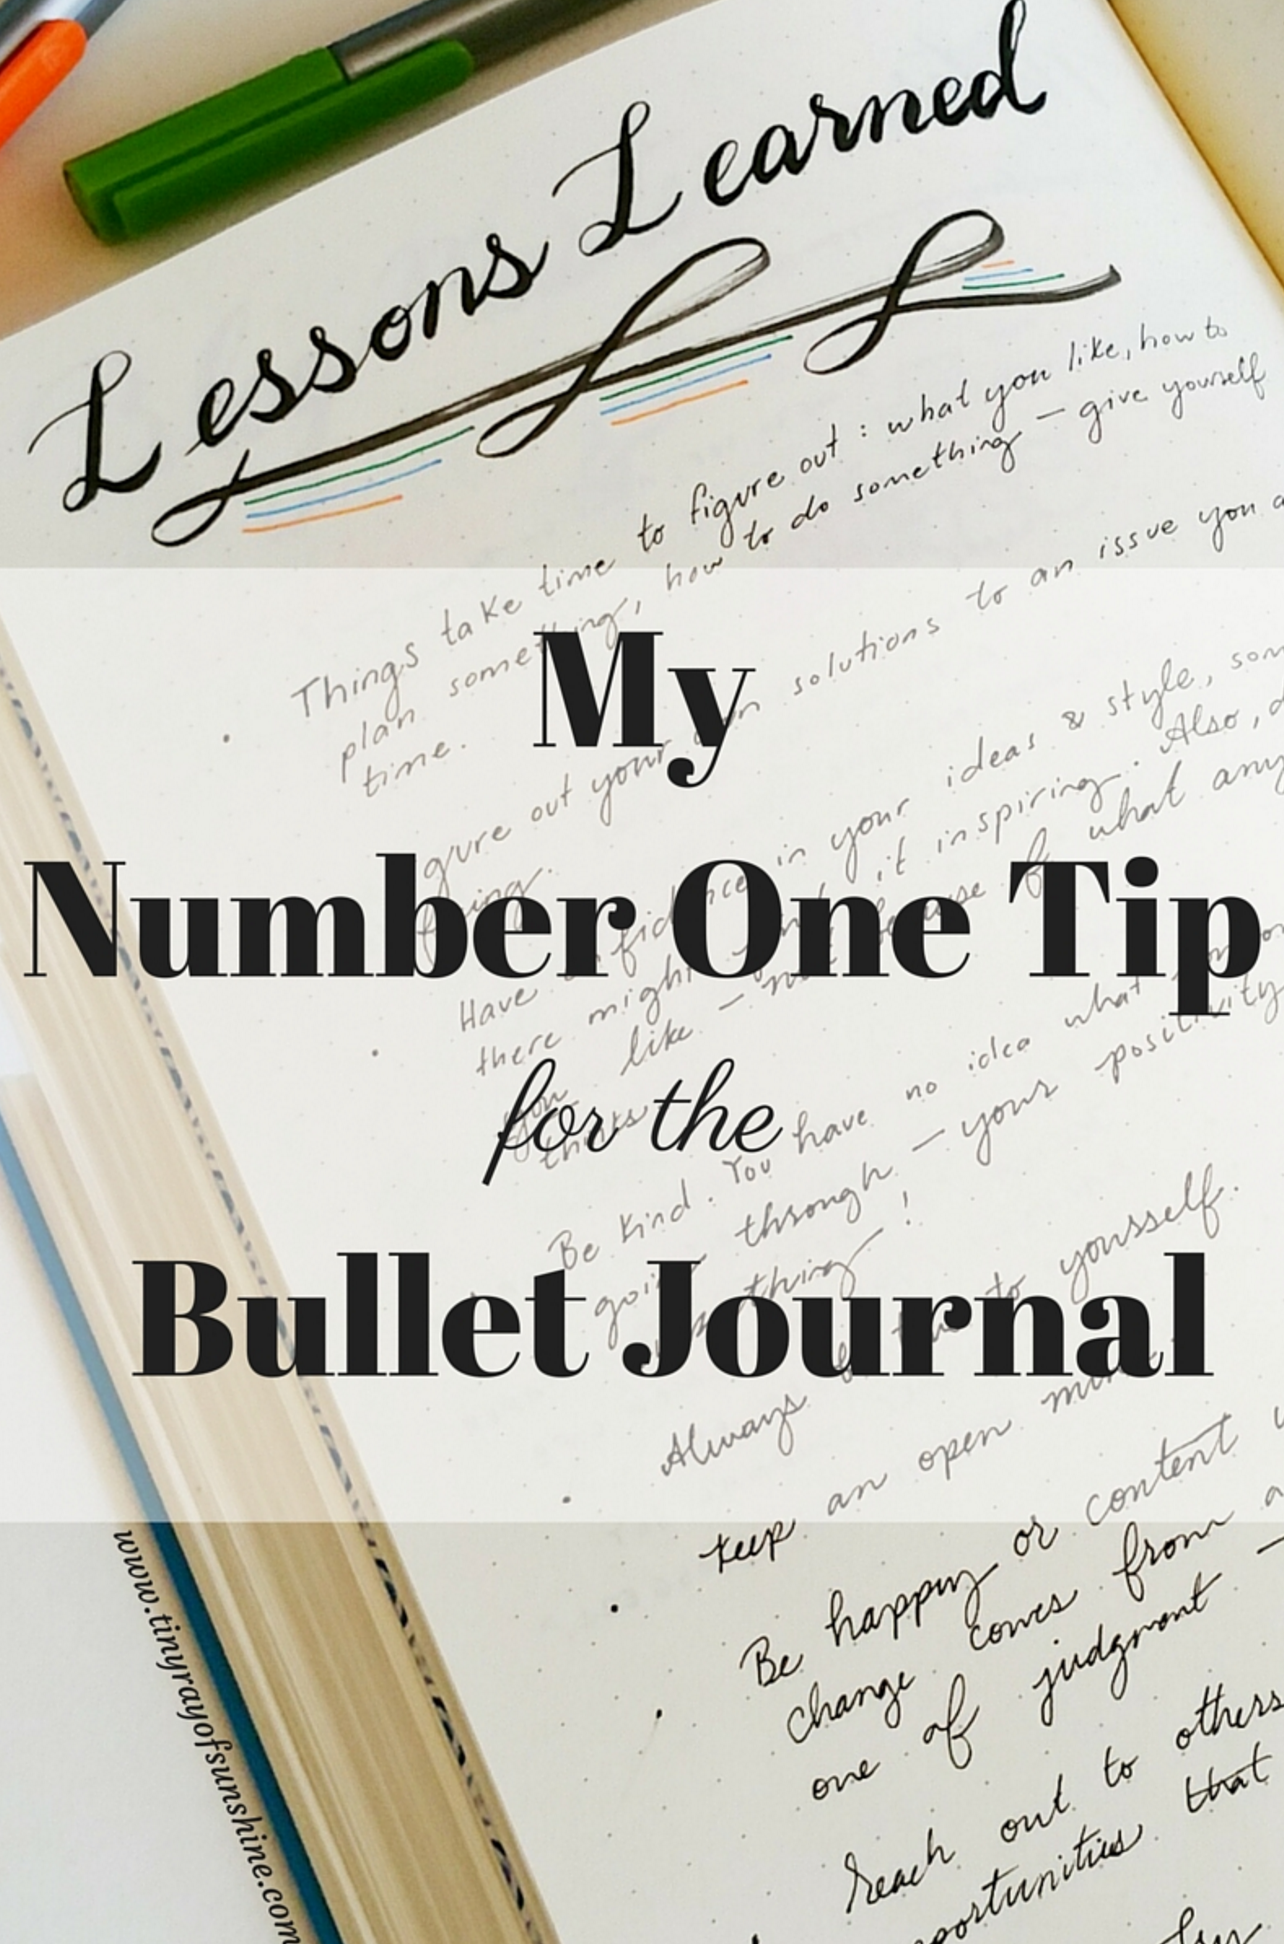 m y number one tip for the bullet journal